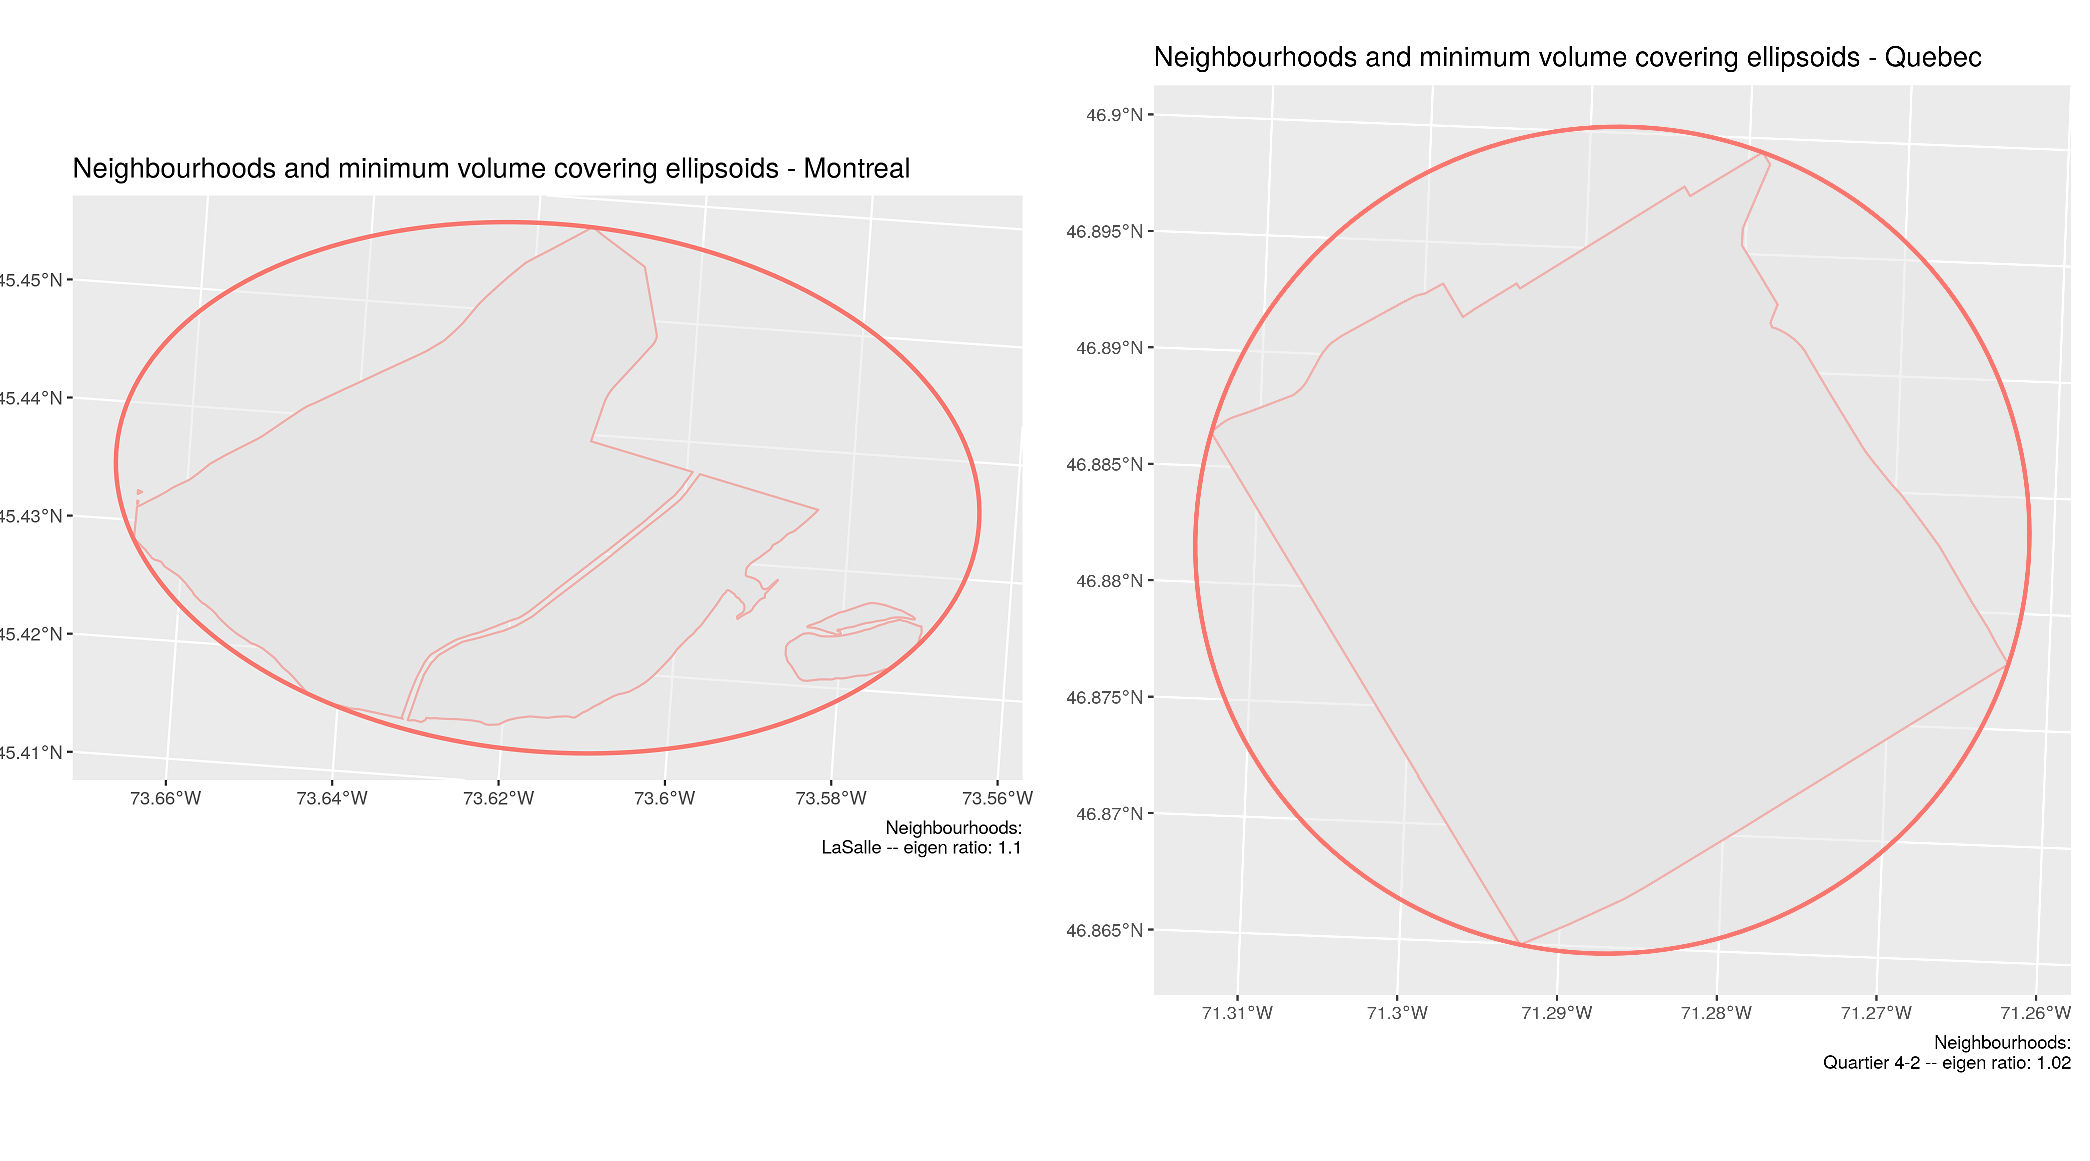 Most symmetric neighbourhoods for Montreal: LaSalle (left) and Quebec City - Quartier 4-1 (right)